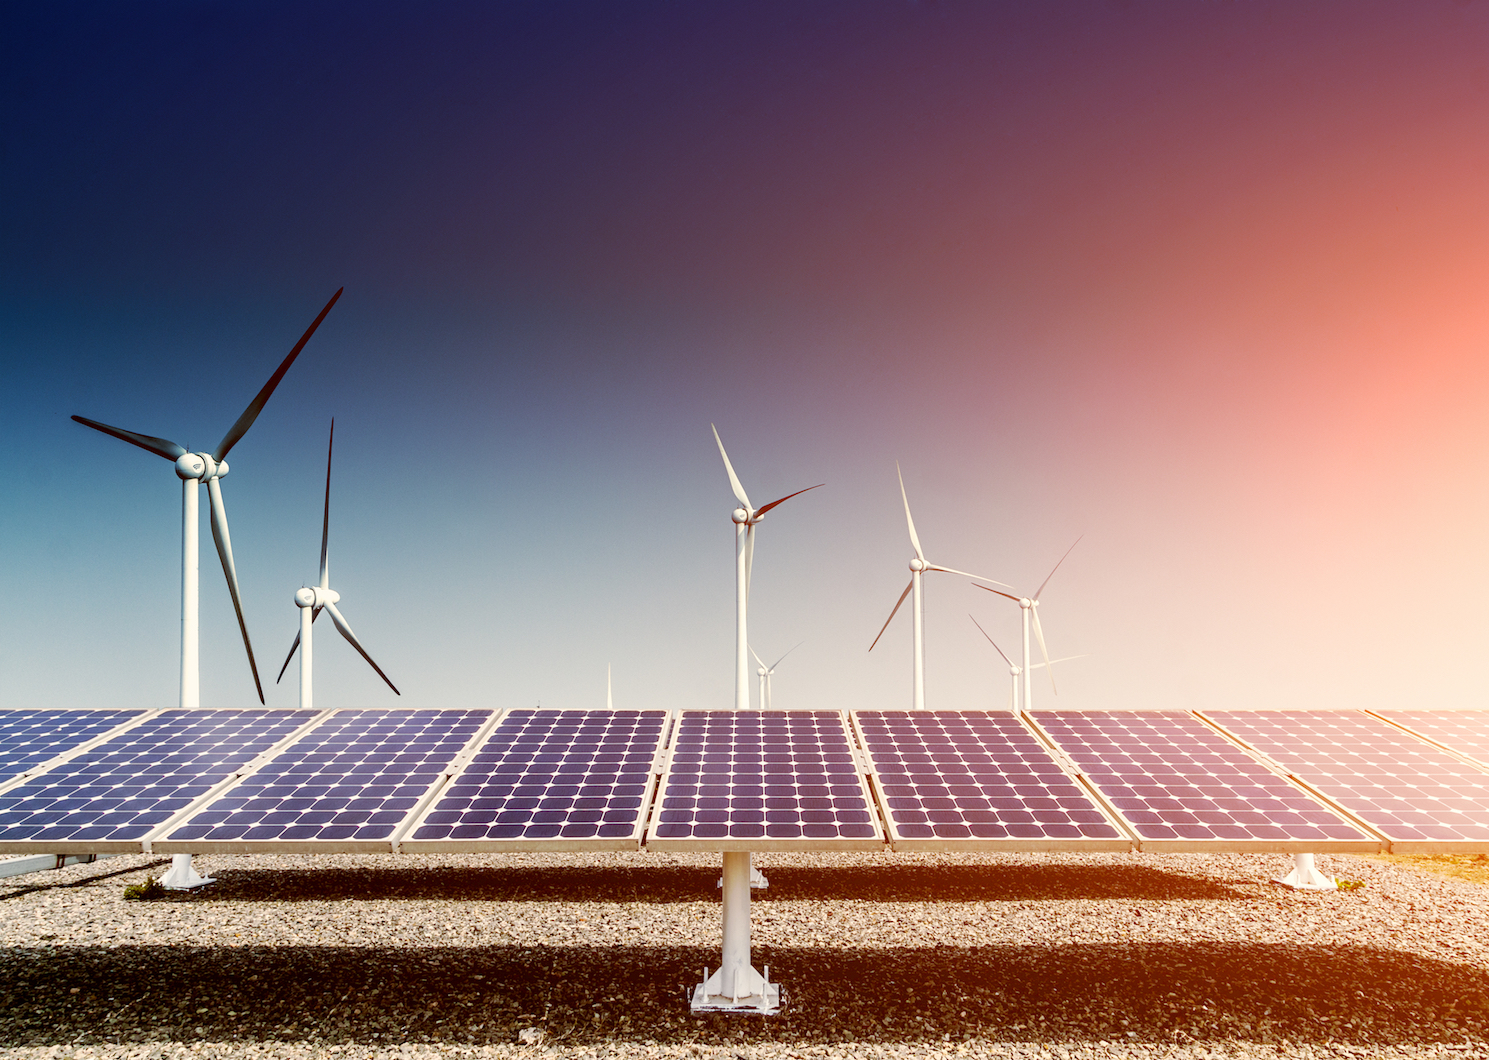 A new study says net-zero carbon emissions would require a much broader strategy of energy sources and approaches than most people think.